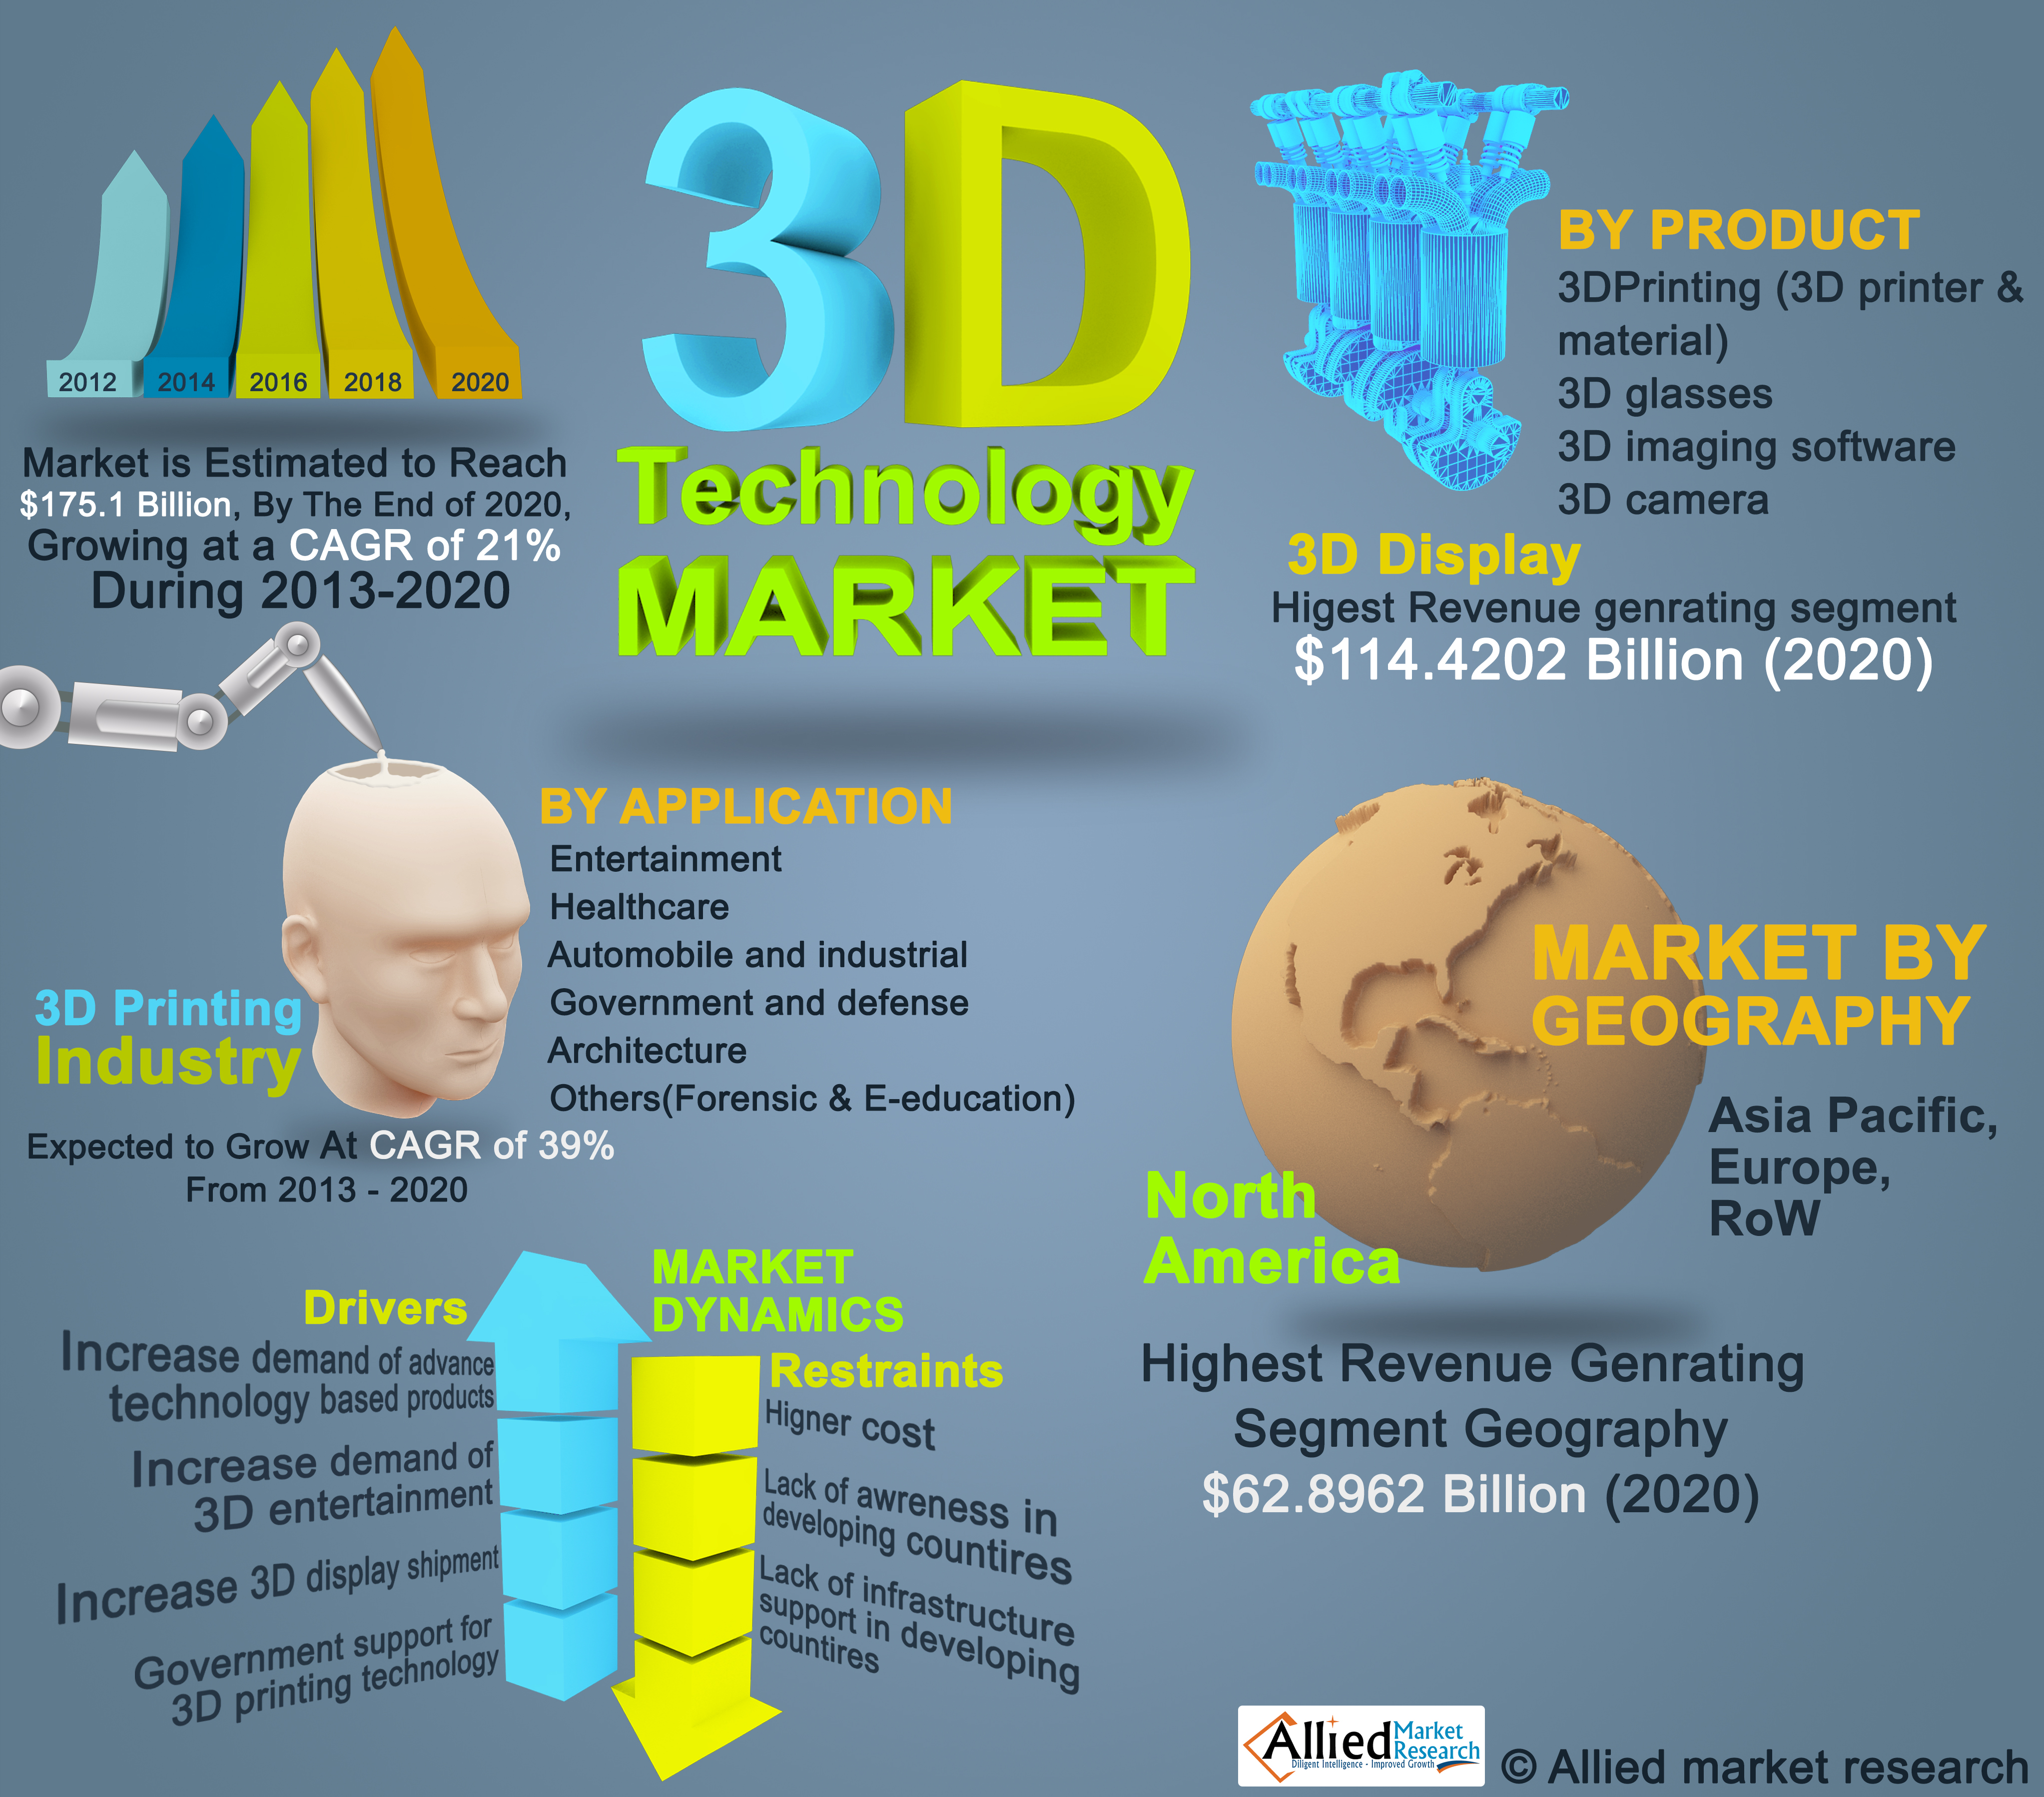 Global 3D Technology Market is Expected to Reach $175.1 Bill